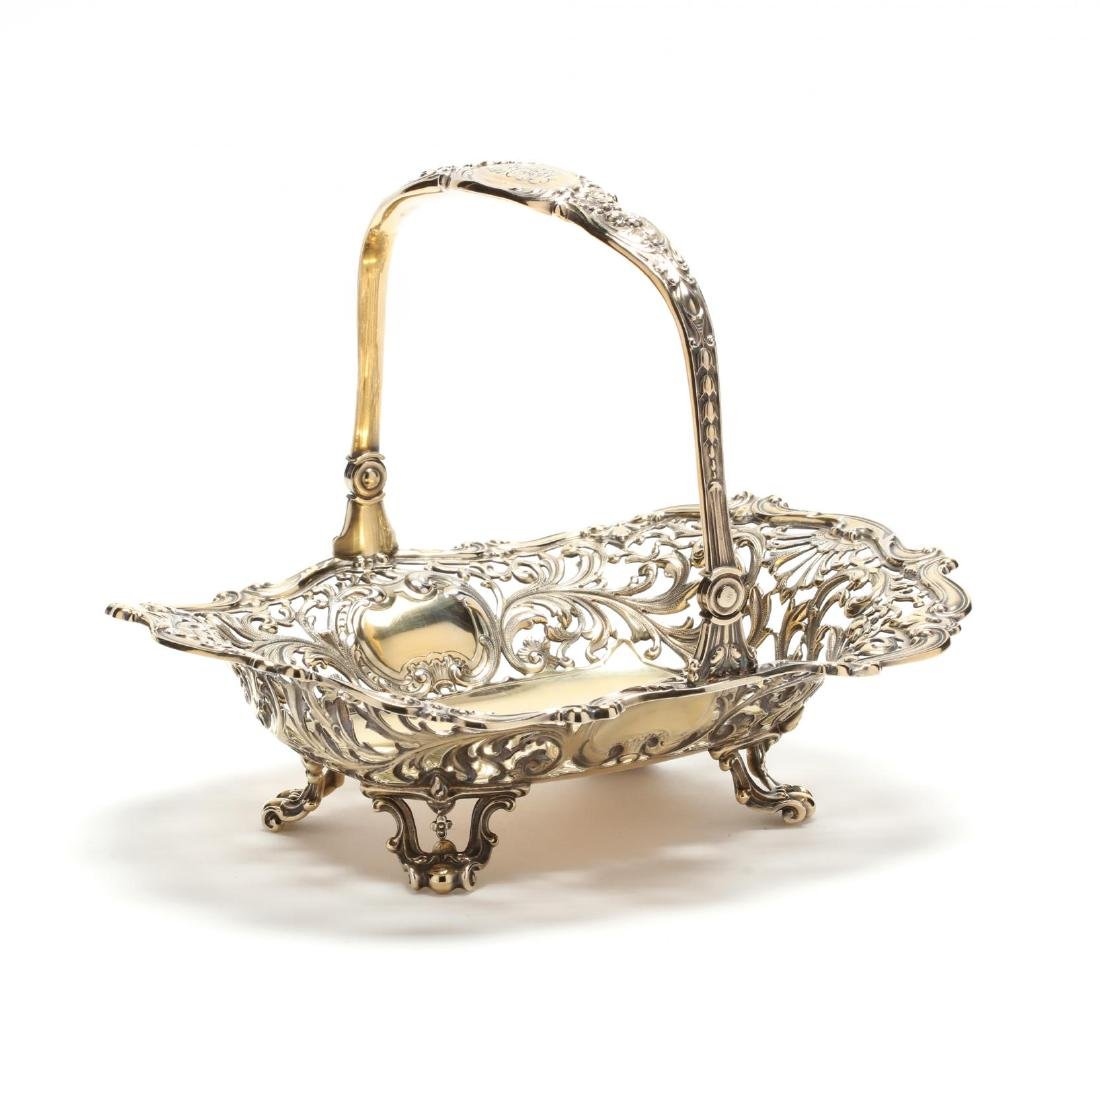 An Antique Vermeil Cake Basket by Gorham